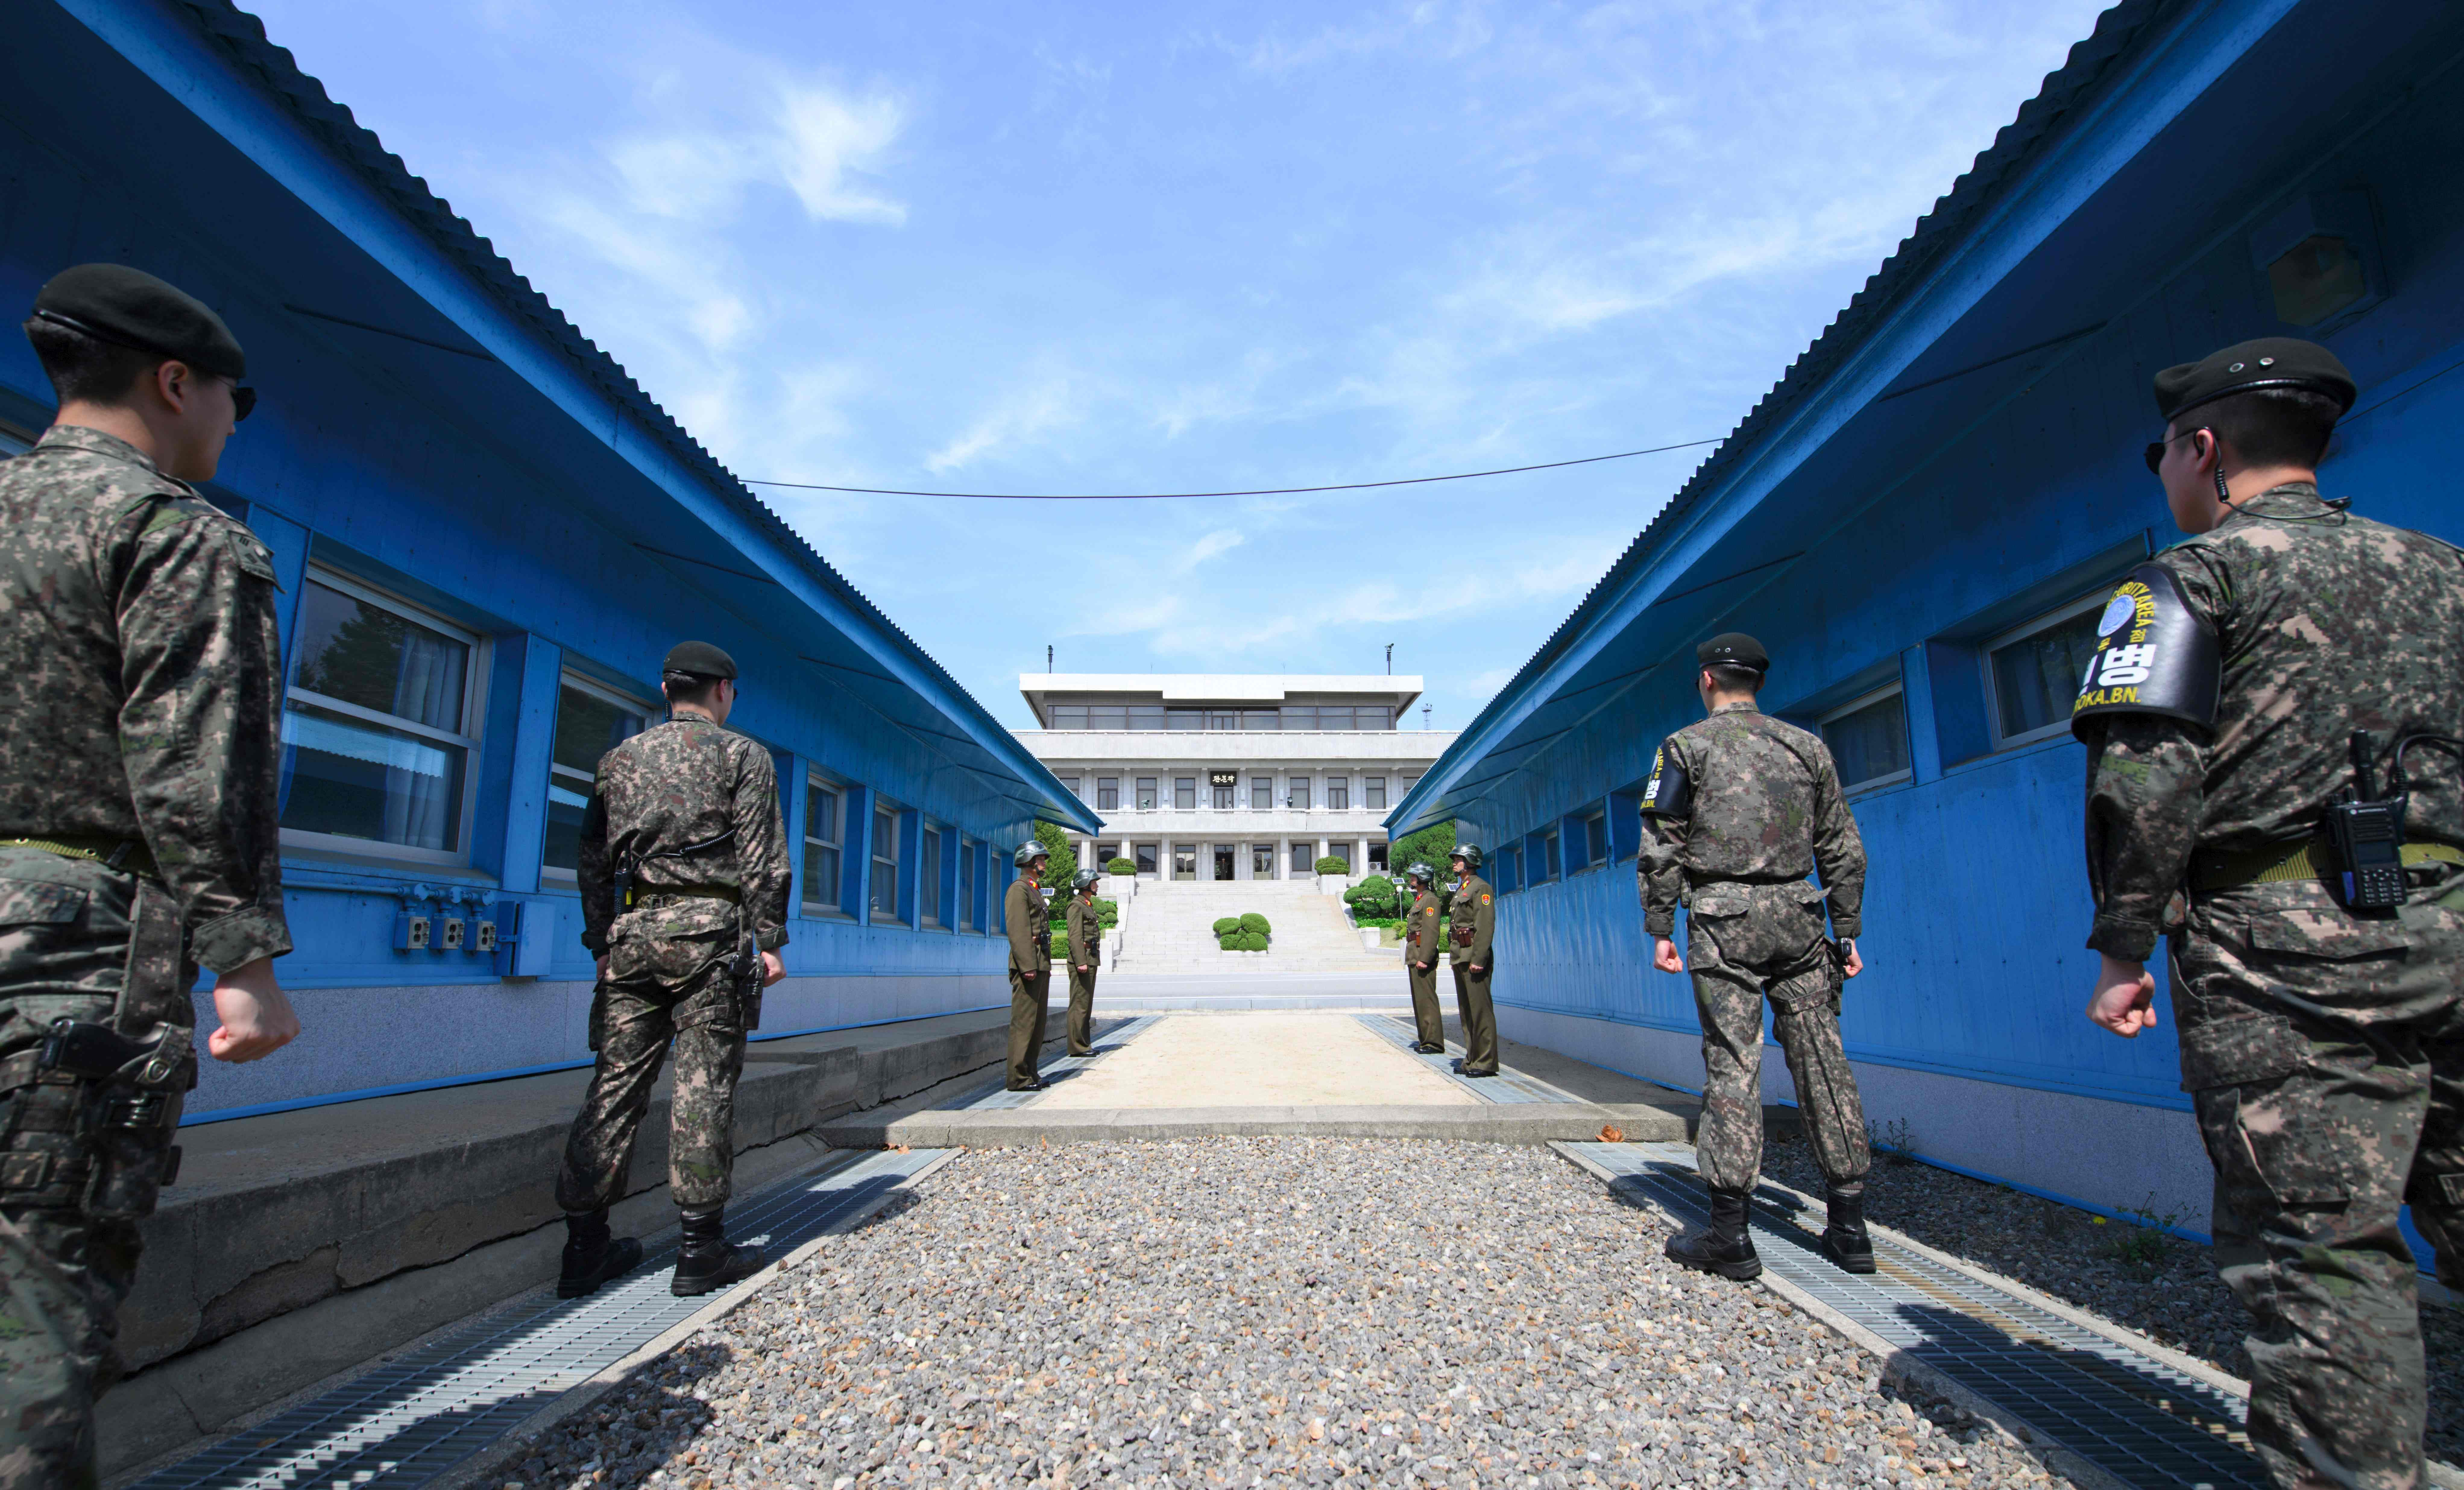 South Korean soldiers (front) and North Korean soldiers (rear) stand guard before the military demarcation line on the each side of the truce village of Panmunjom in the Demilitarized zone (DMZ) dividing the two Koreas on April 26, 2018 ahead of the